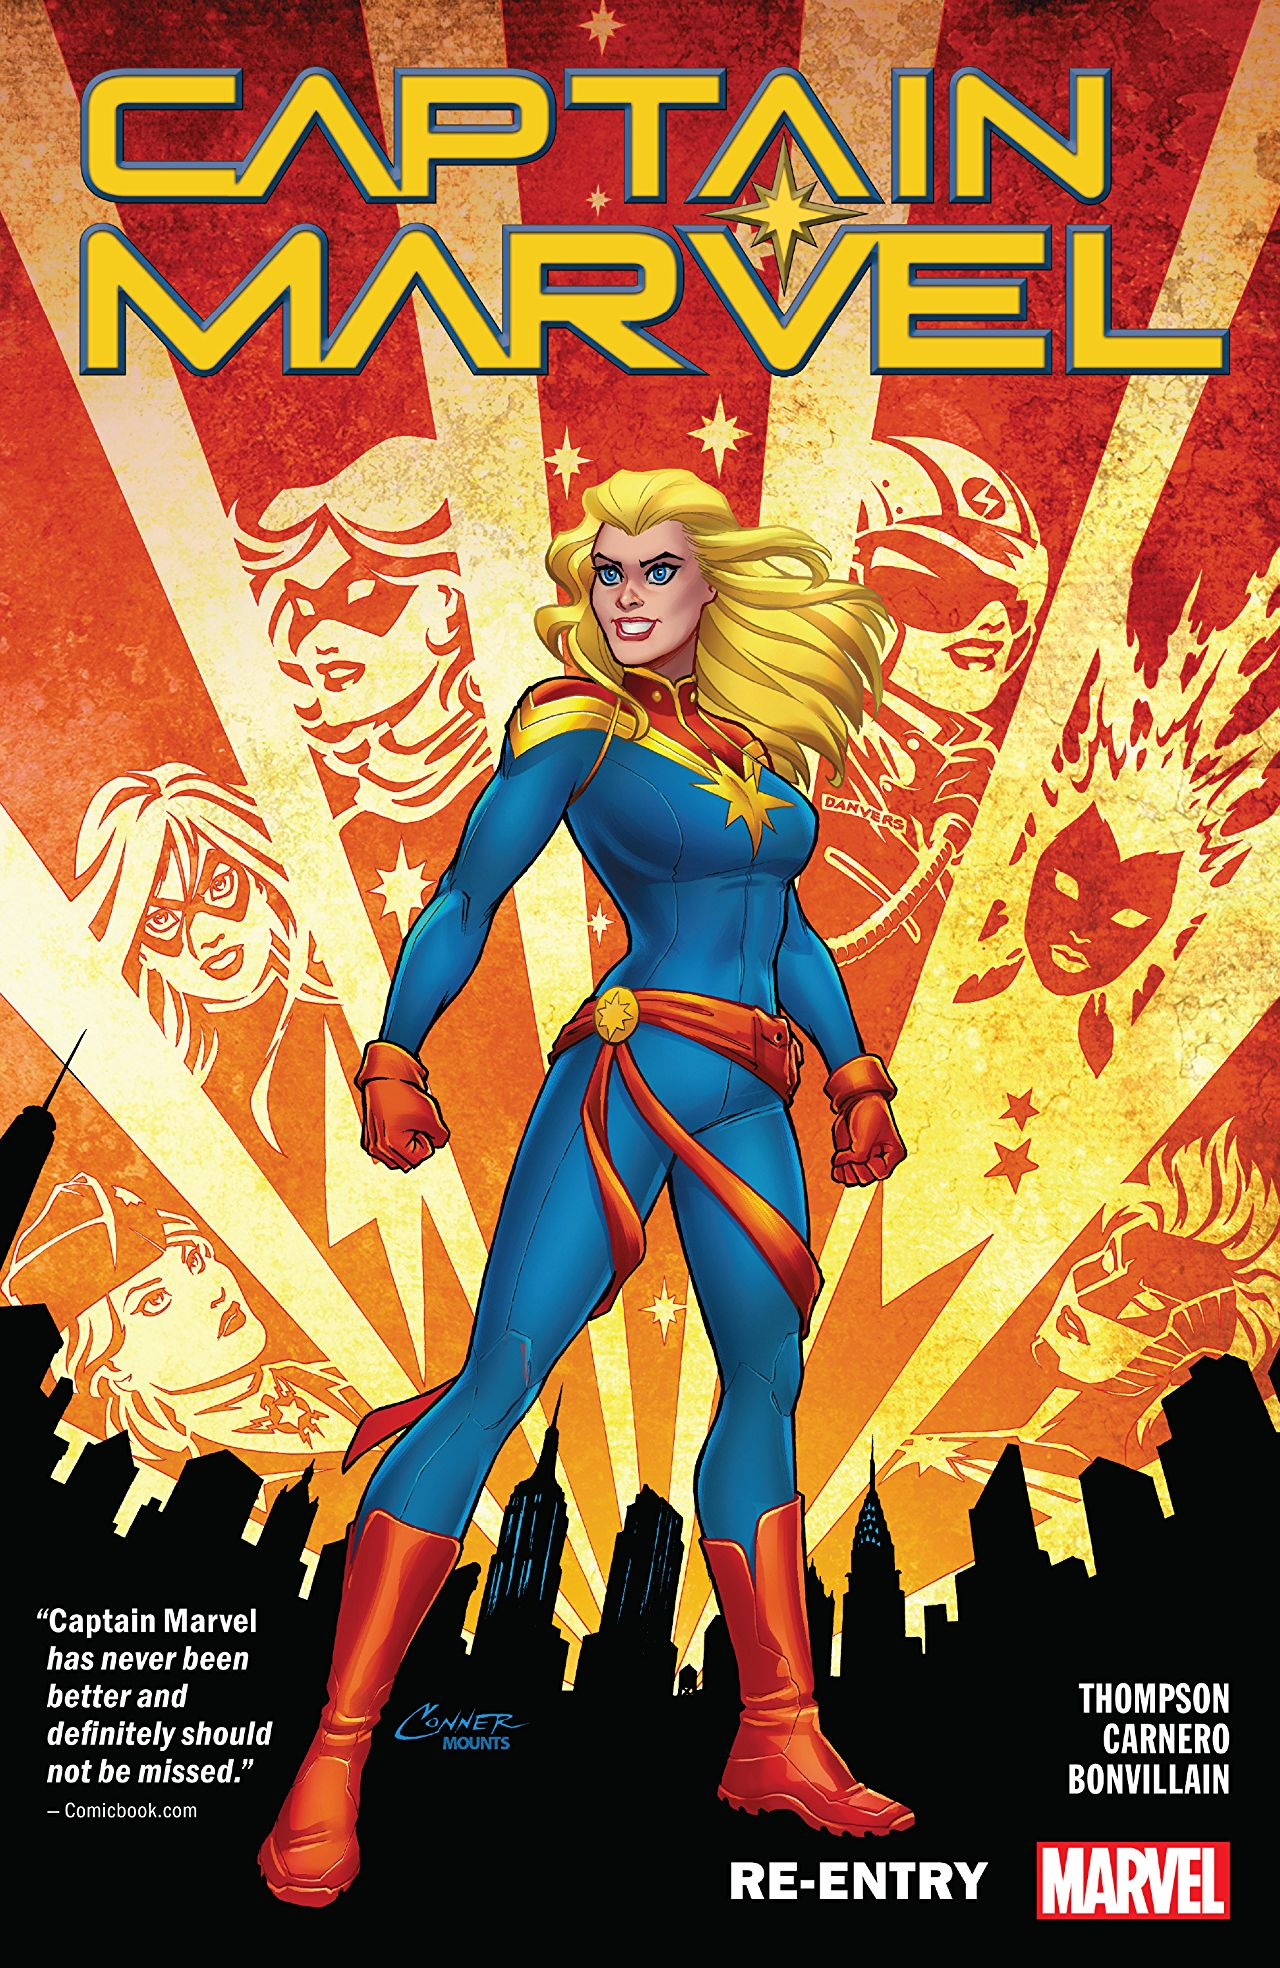 Captain Marvel Vol. 1: Re-Entry TPB Review